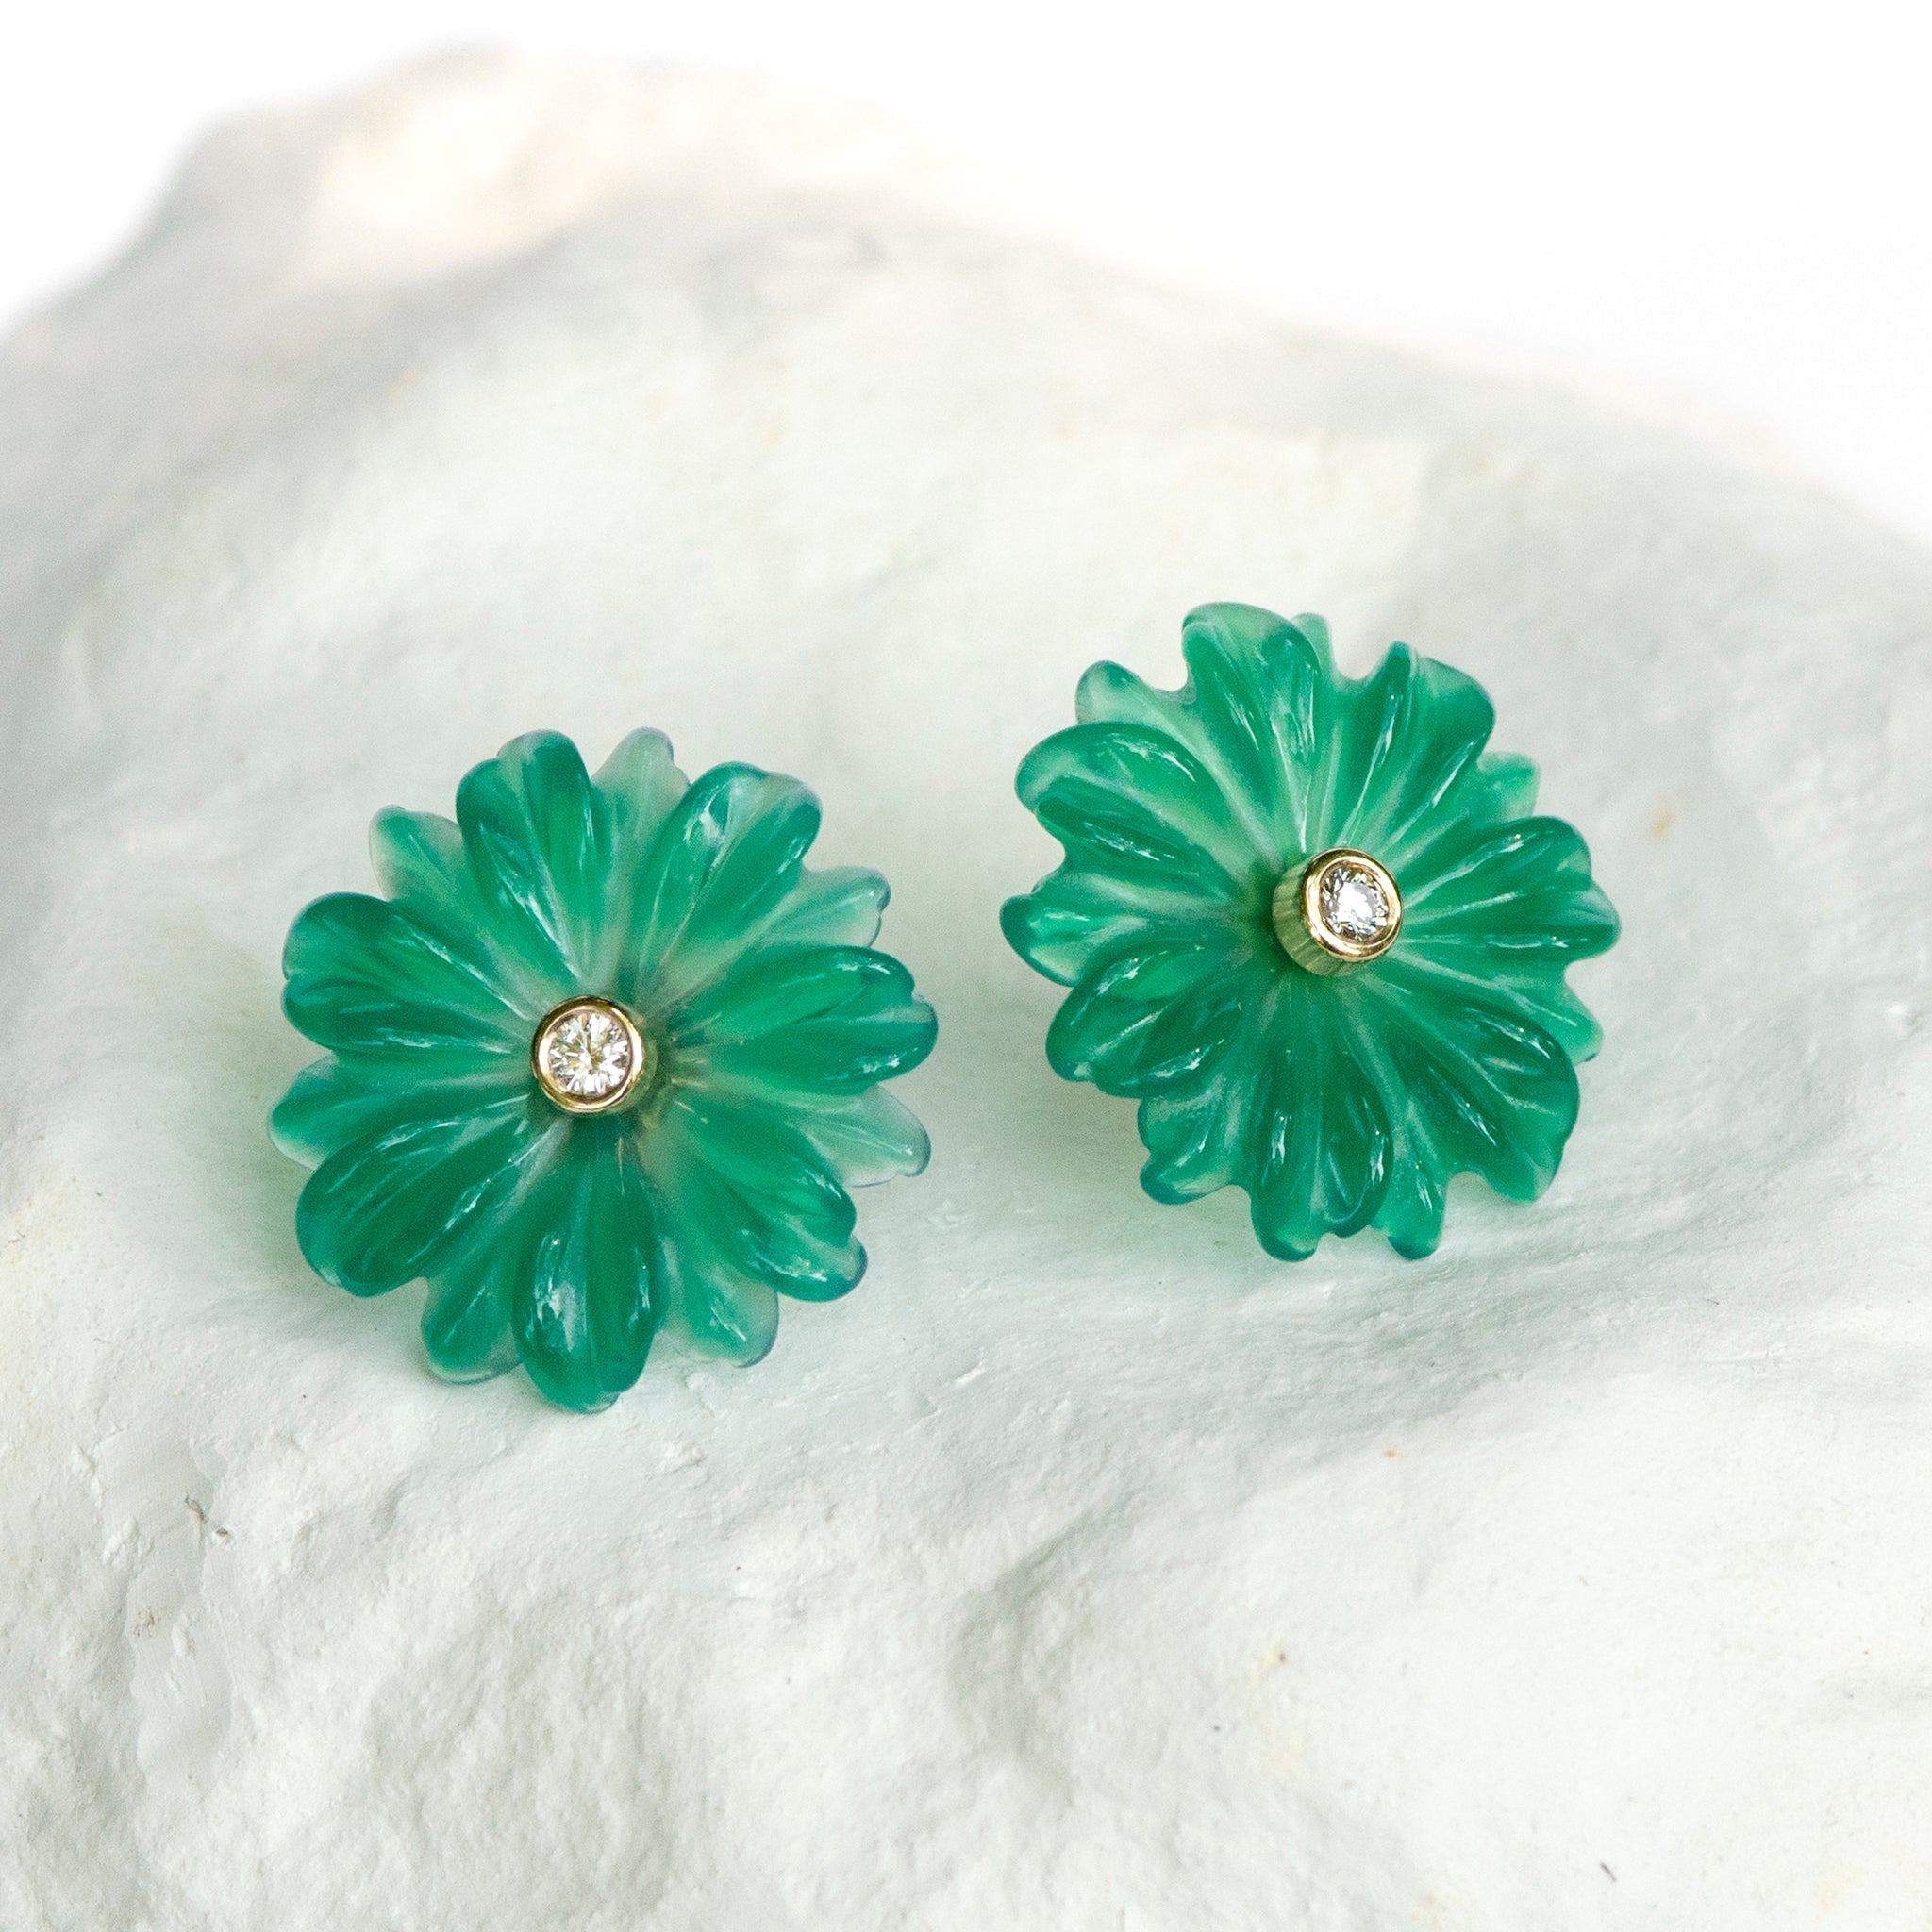 Green Agate Daisy earrings